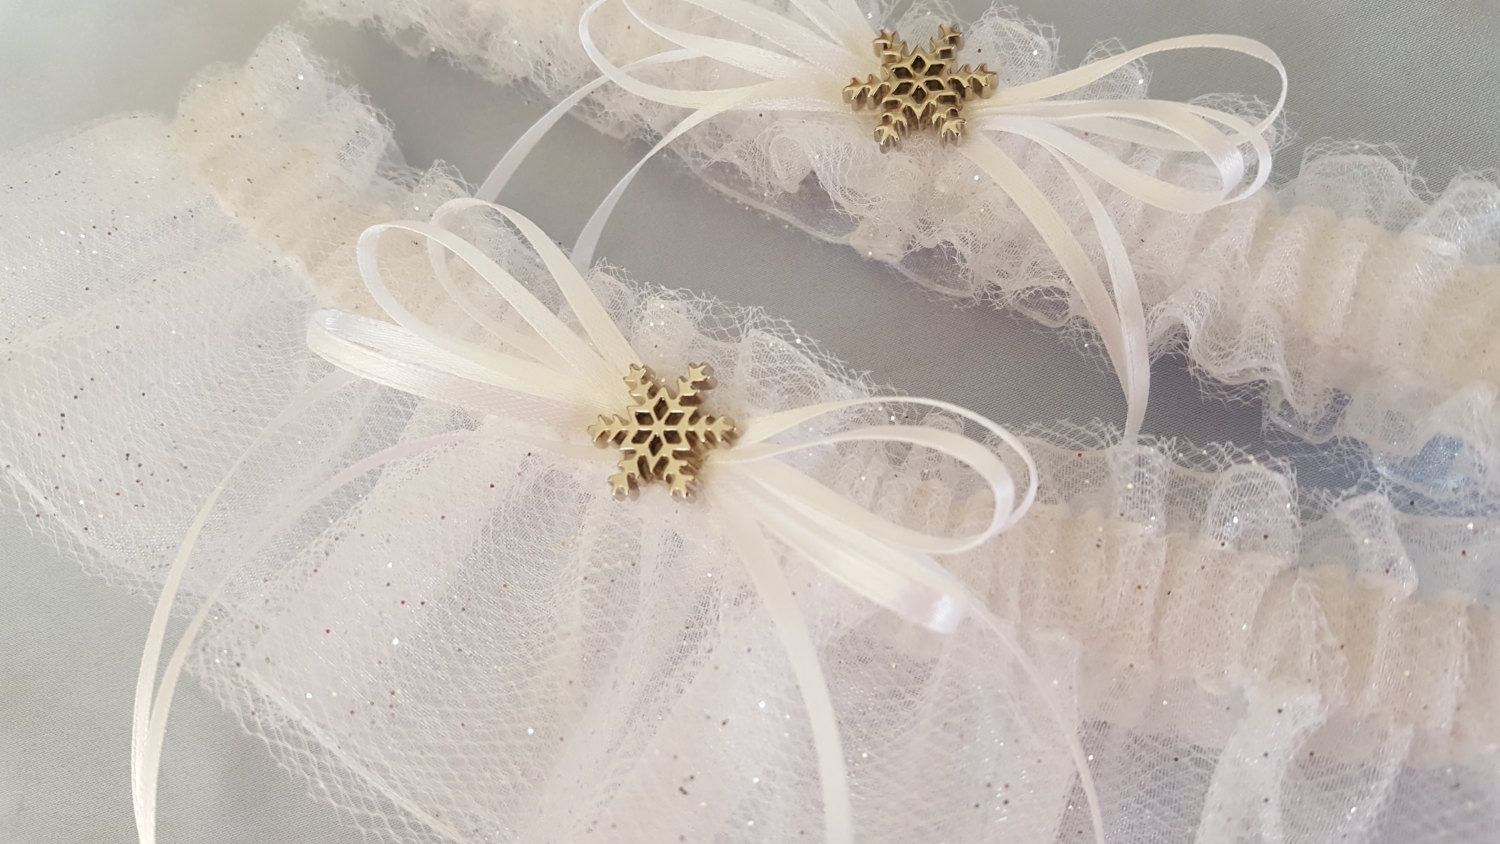 Let IT SNOW Snowflake White Silver Glitter Snowflake Accented Bridal Garter Set by Allofyou on Etsy